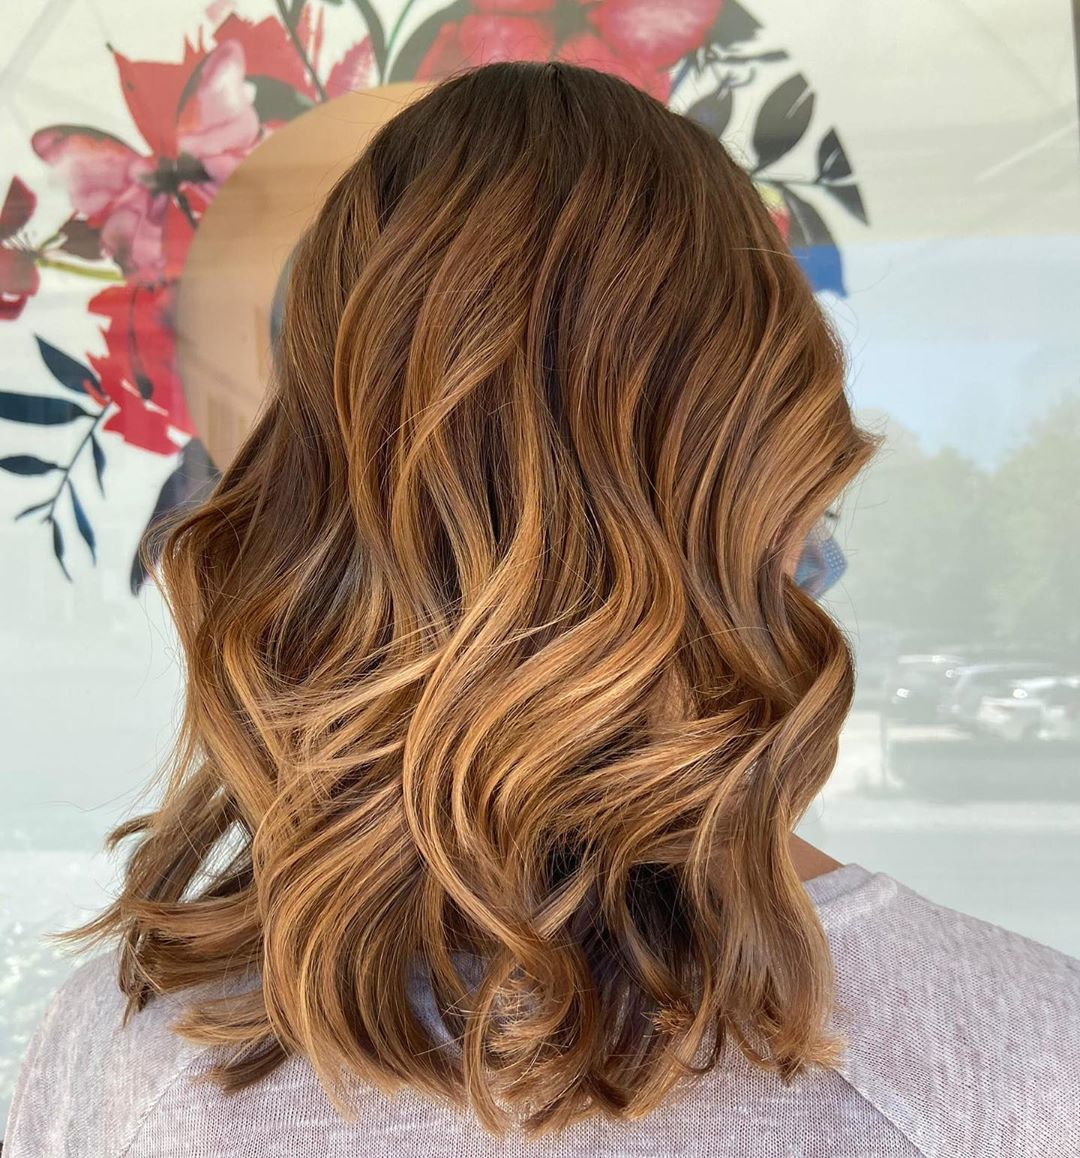 Toffee Hair with Caramel Highlights